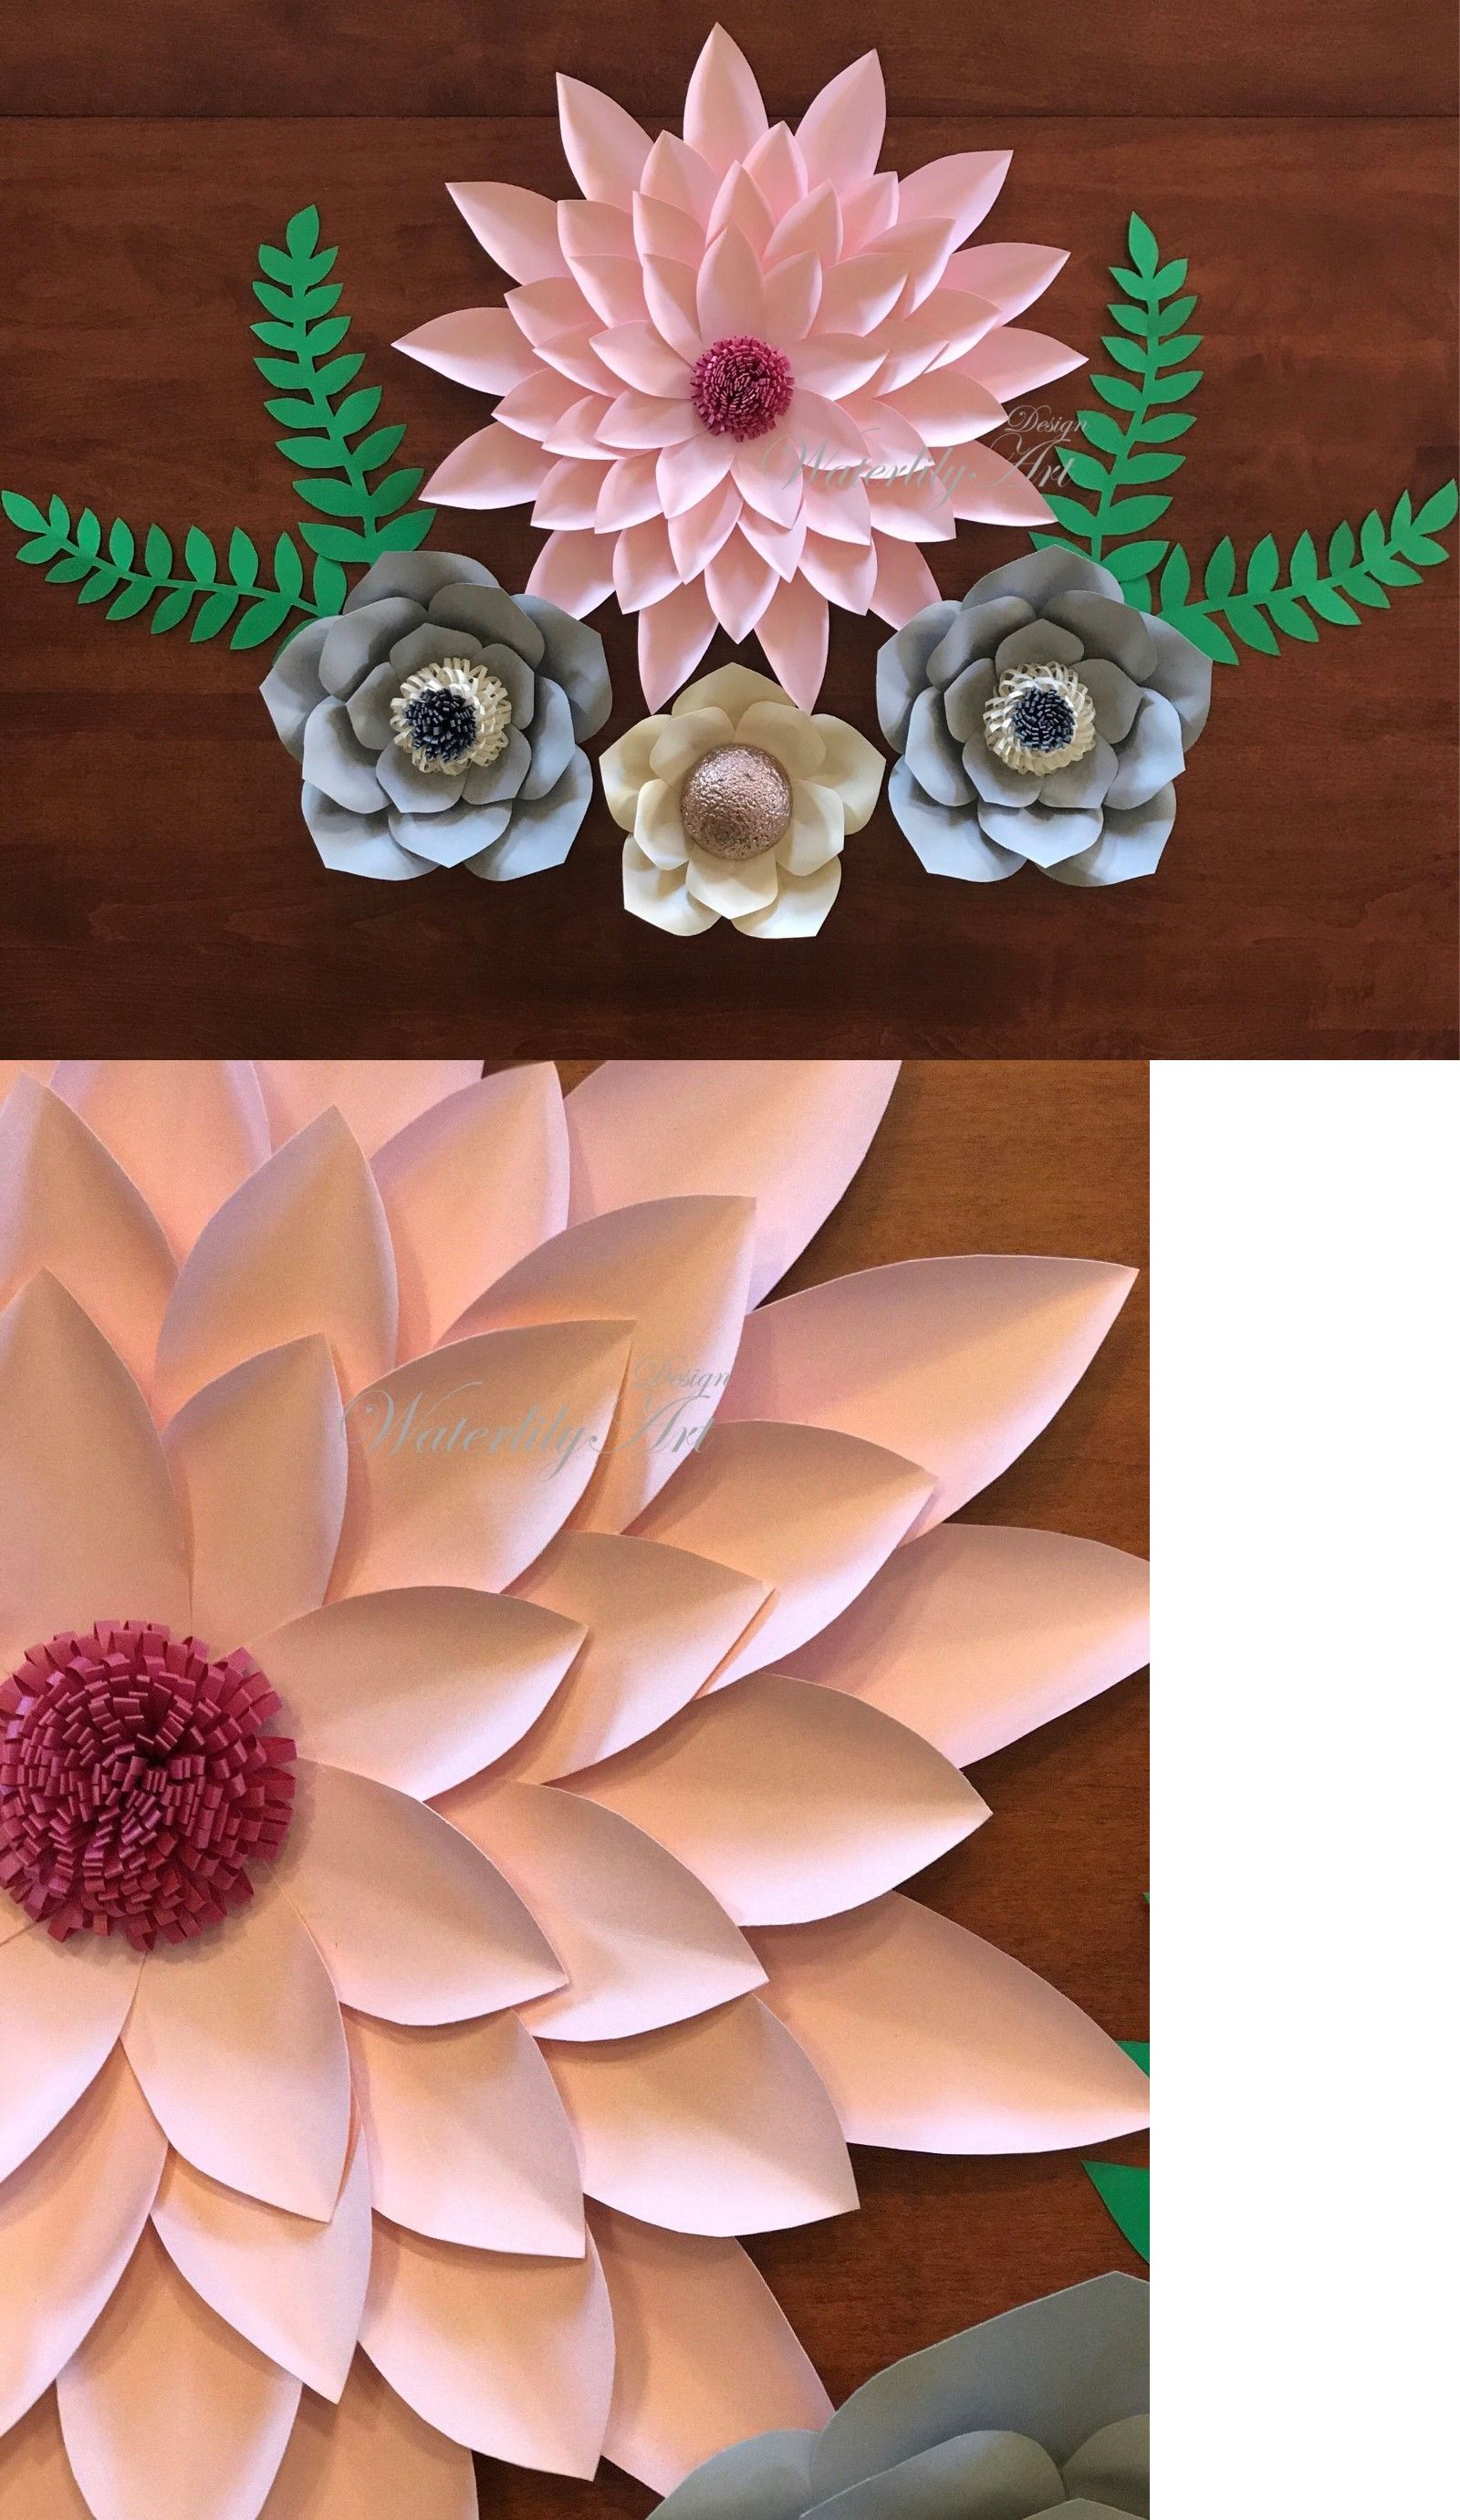 Flower embellishments 160734 pink grey paper flowers buy it now flower embellishments 160734 pink grey paper flowers buy it now only mightylinksfo